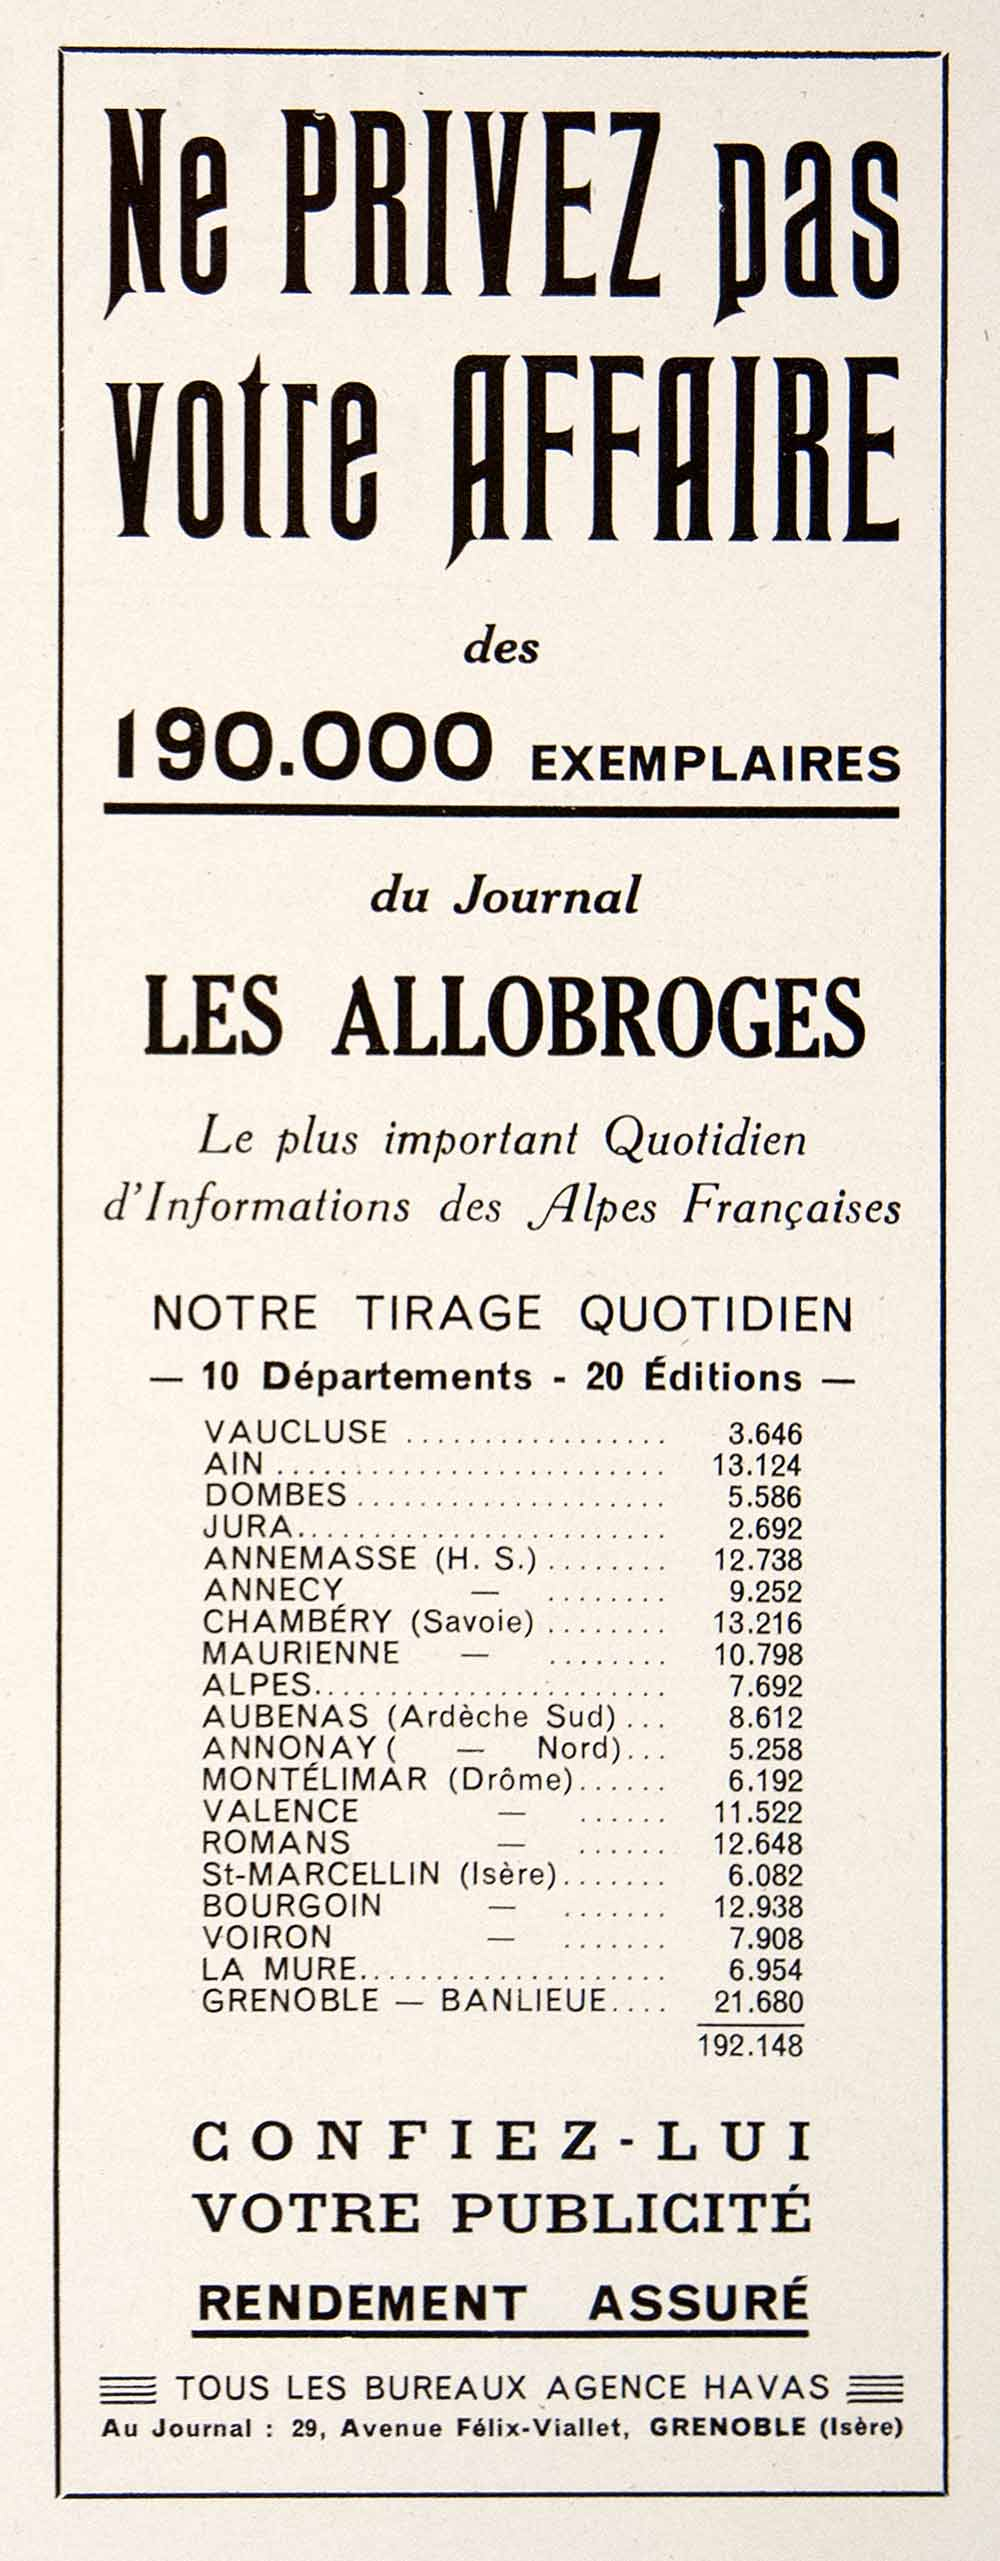 1948 Ad Les Allobroges French Newspaper France Circulation 29 Ave Felix VEN8